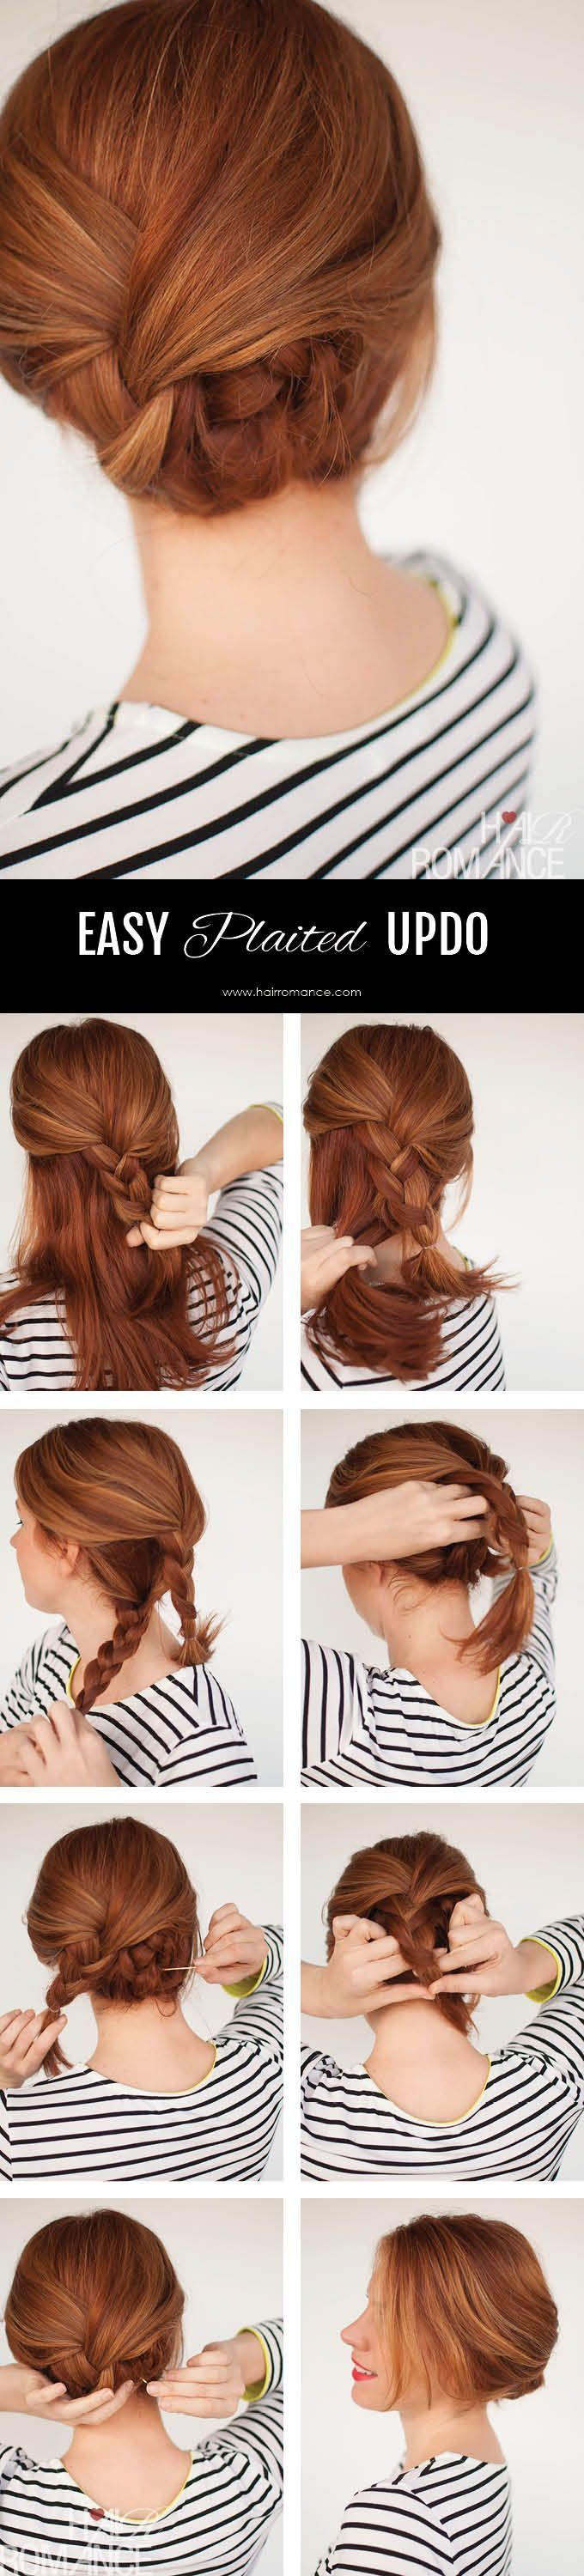 See More Hairstyle Ideas on http://pinmakeuptips.com/hairstyles-rules-you-should-follow-if-you-want-to-look-good/